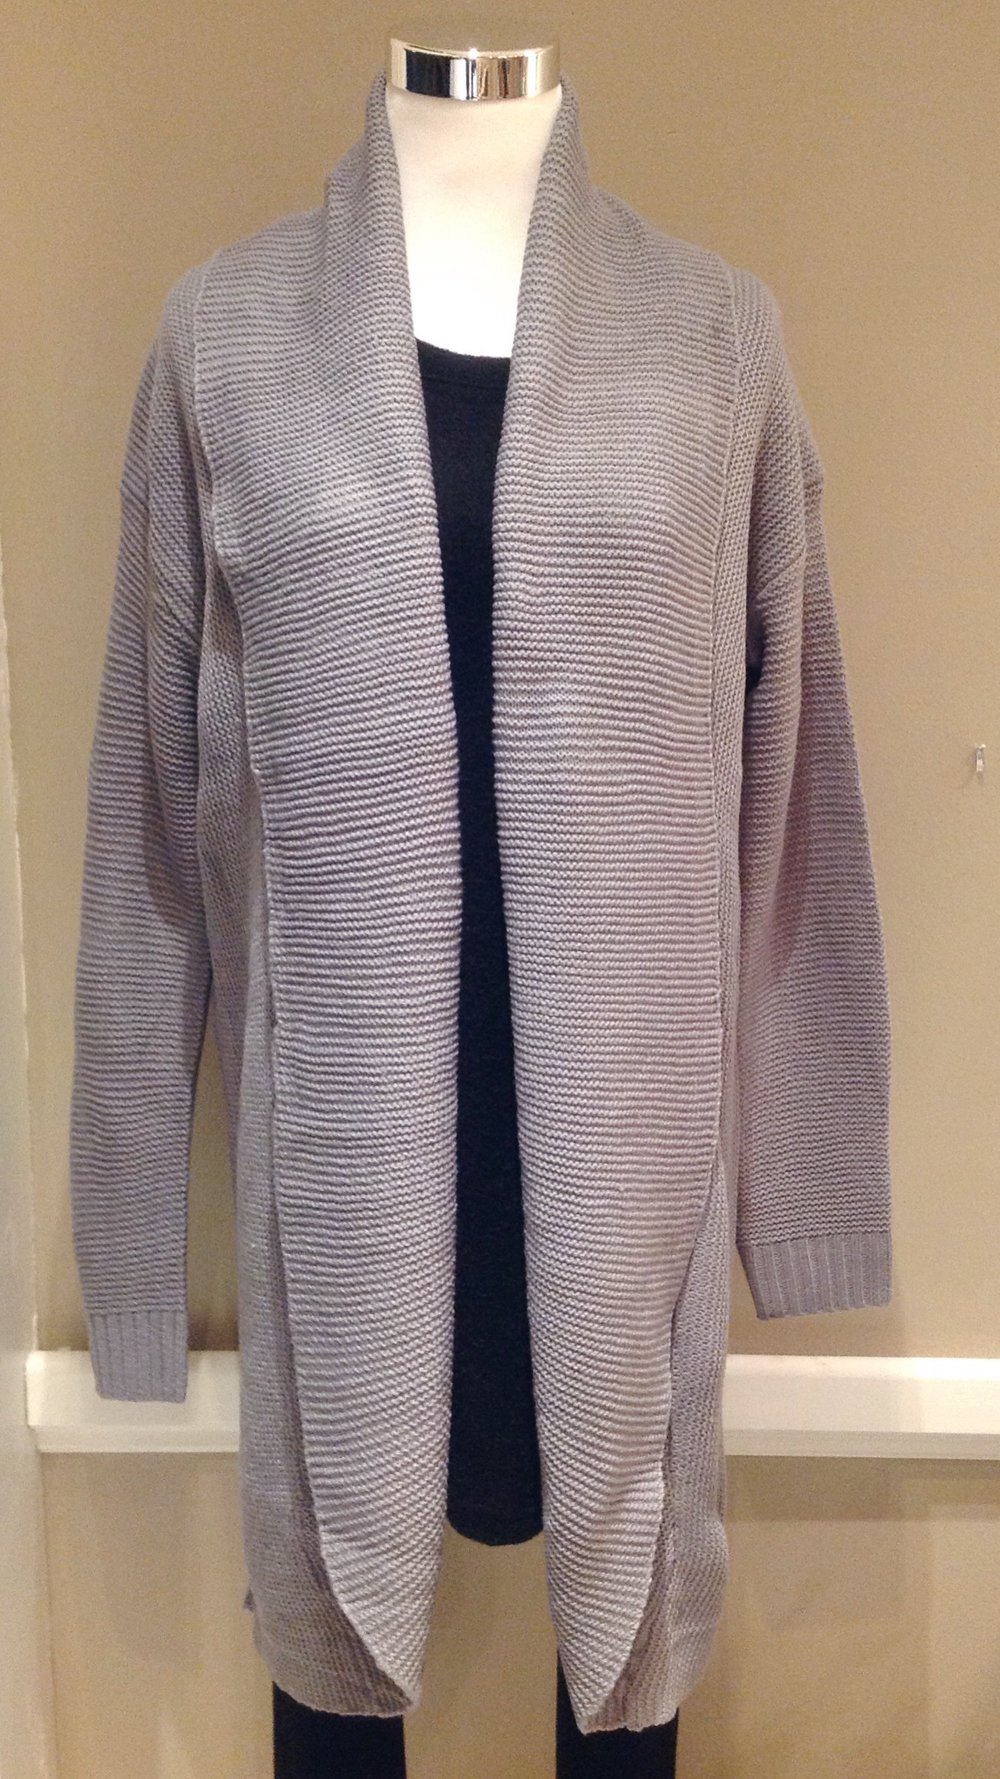 Cotton blend cardigan with rounded hem in steel grey